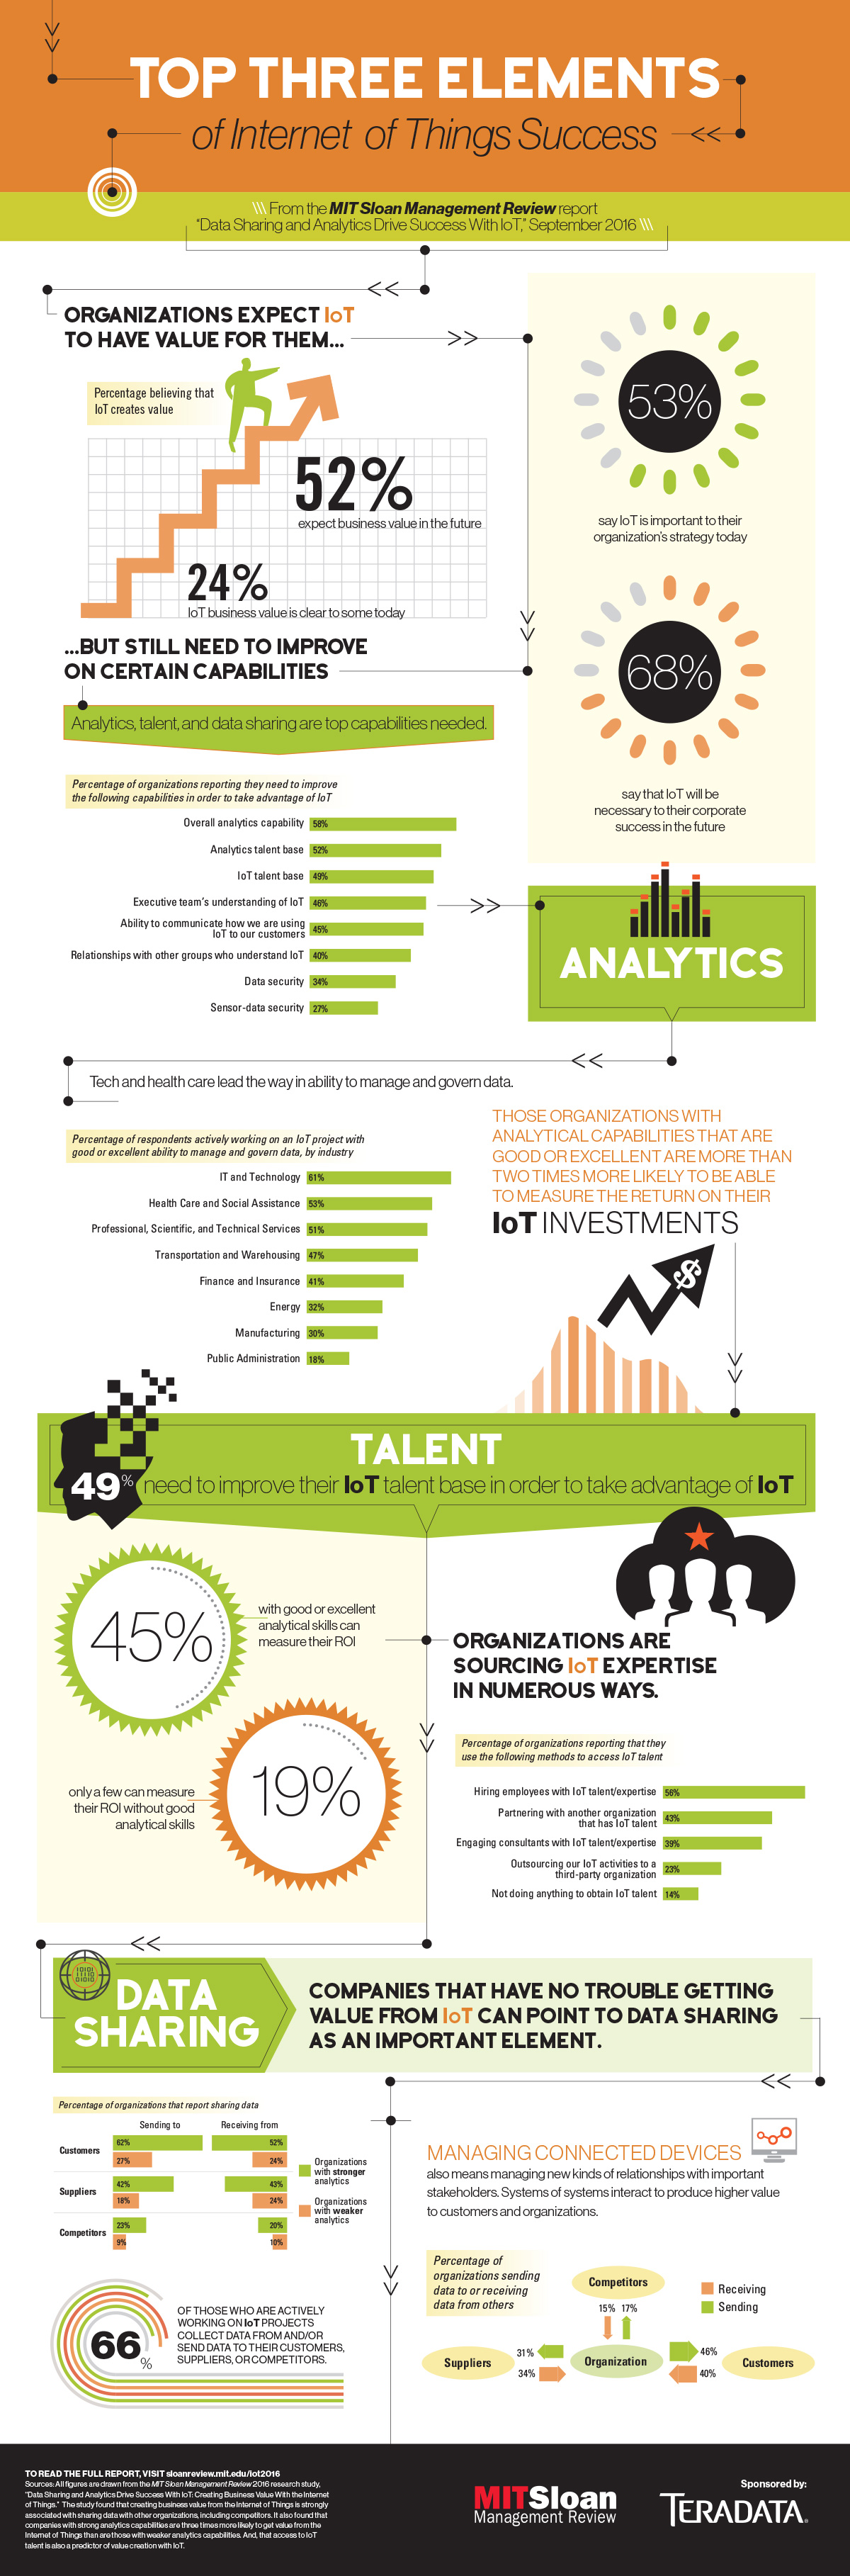 2016 Internet of Things Report Infographic